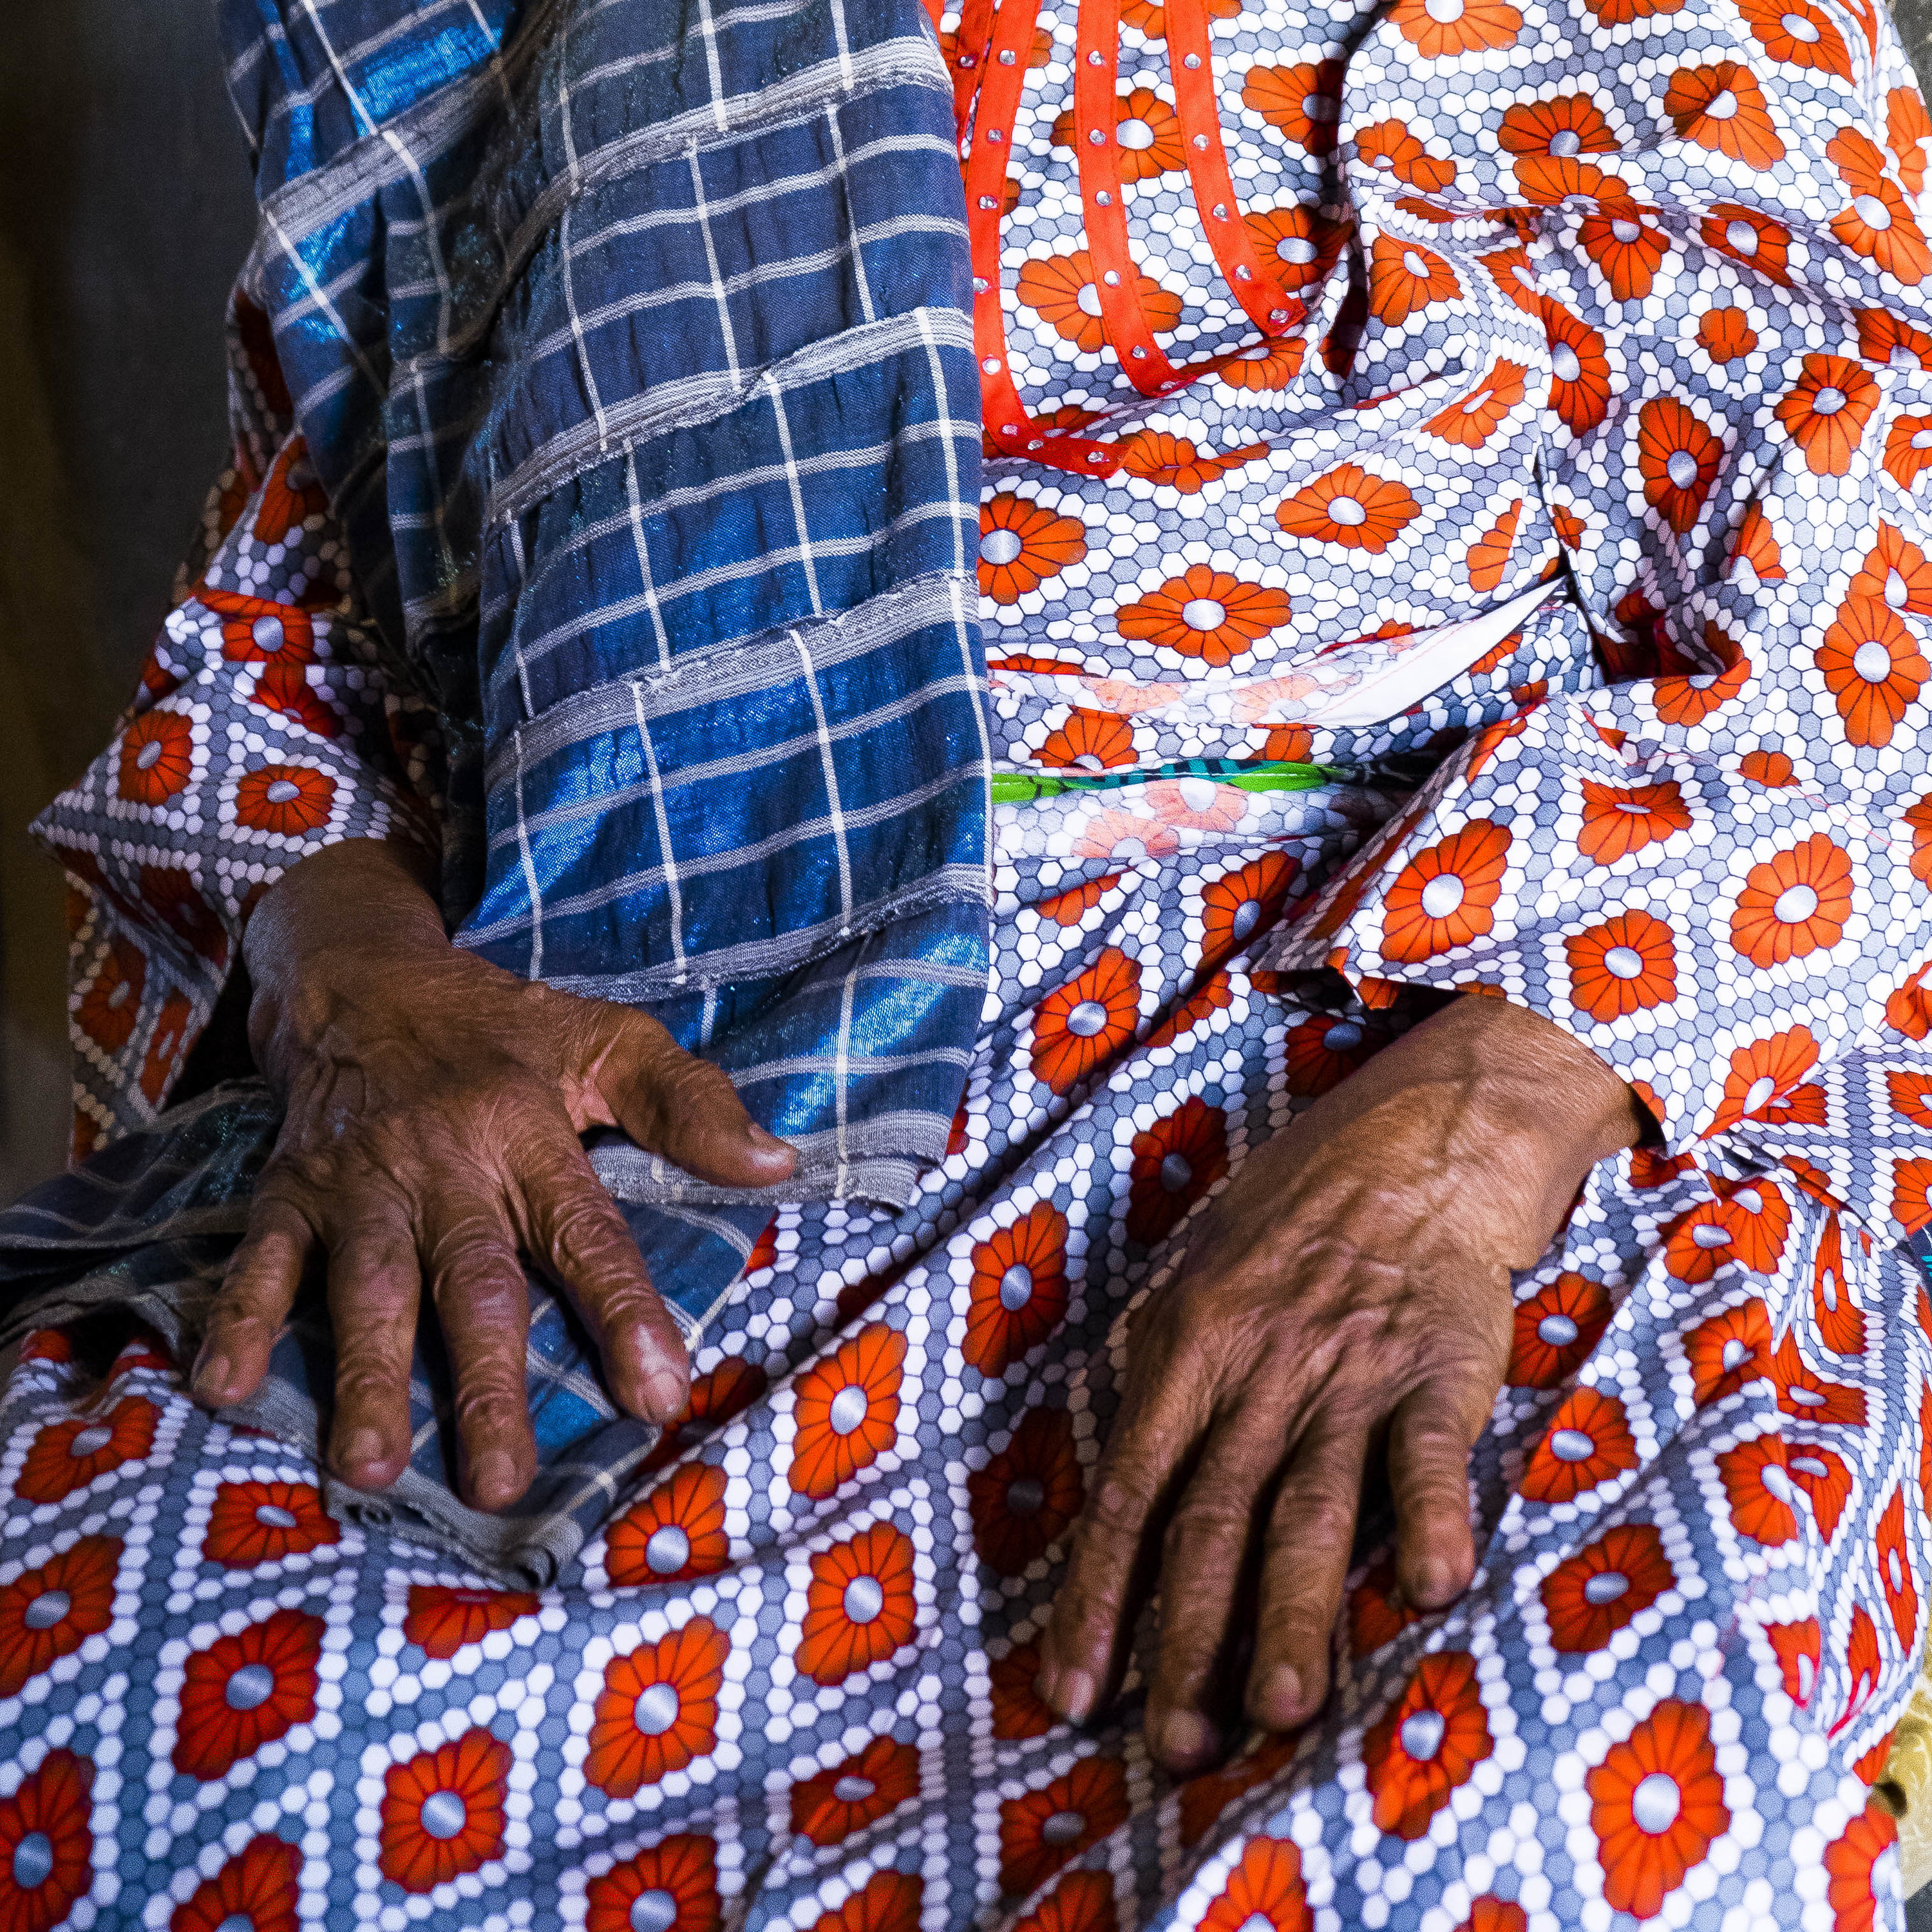 A woman rests her hands on her lap while wearing a boldly patterned dress